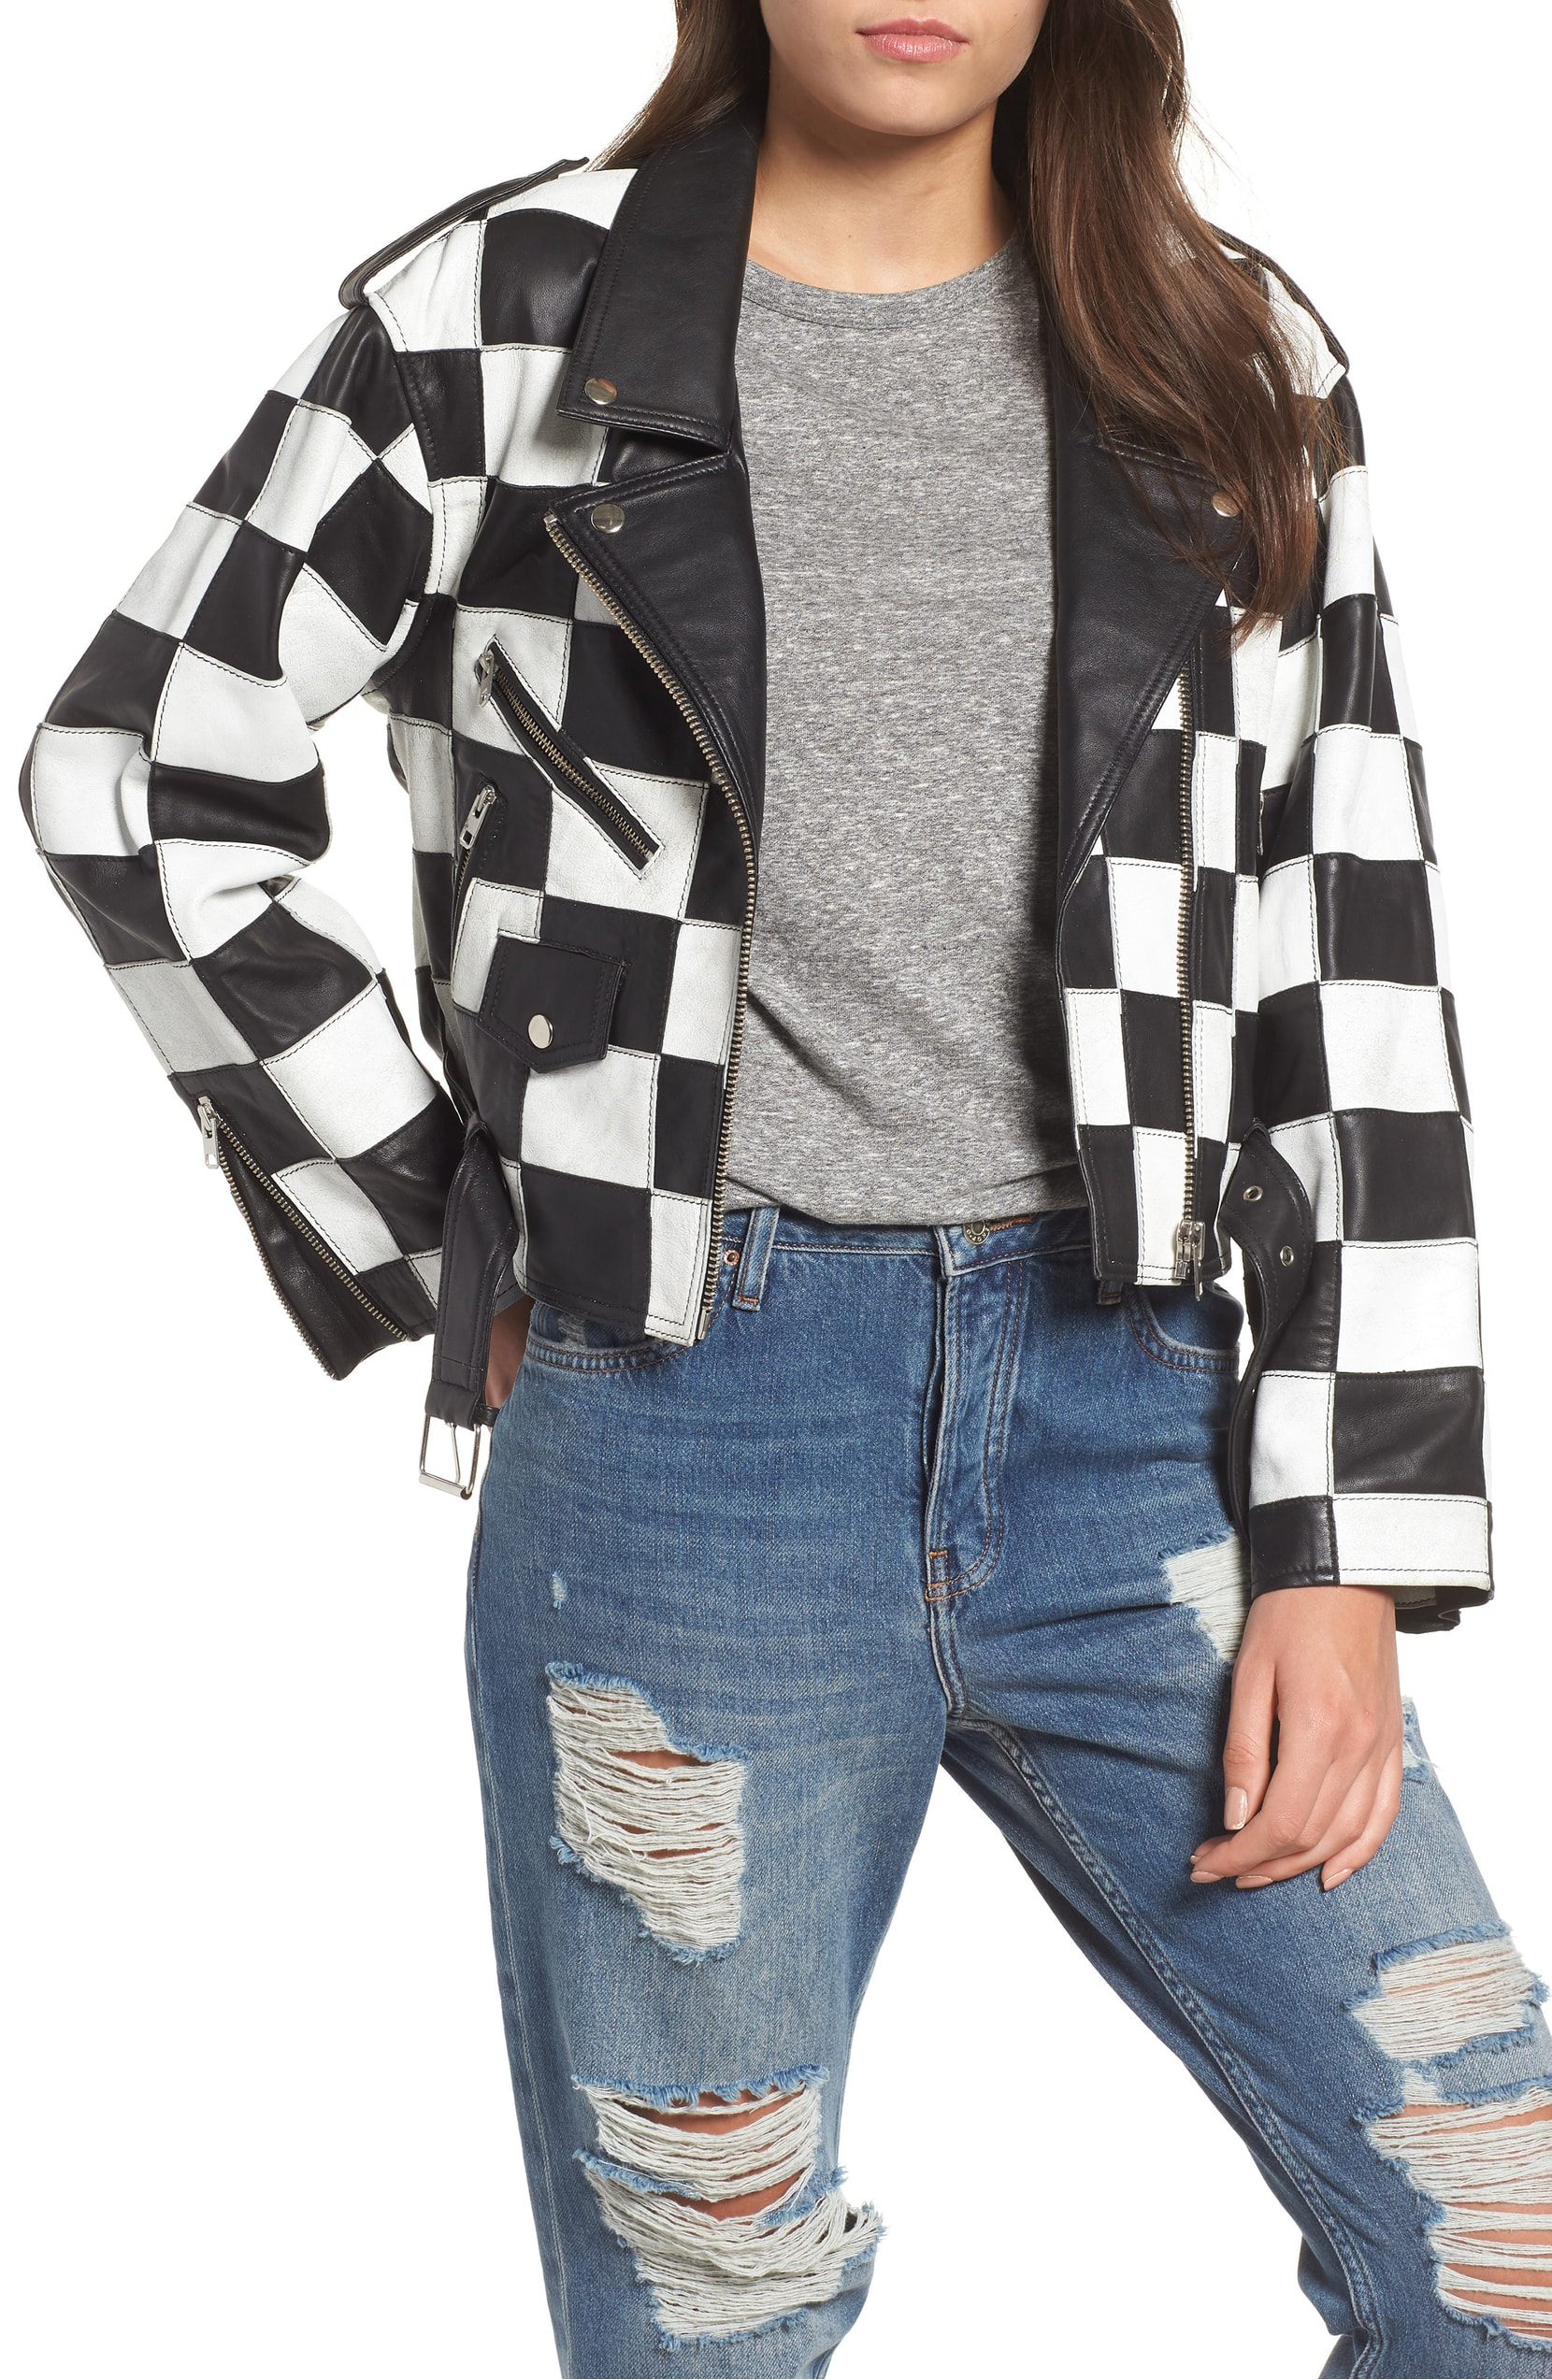 The Trend: 80s. Check out this blast from the past with this Checkerboard Leather Moto Jacket.{ }When it comes to the race to the top of the style game, slipping into this live-out-loud jacket makes you an instant winner. TOPSHOP - $370. (Image: Nordstrom)